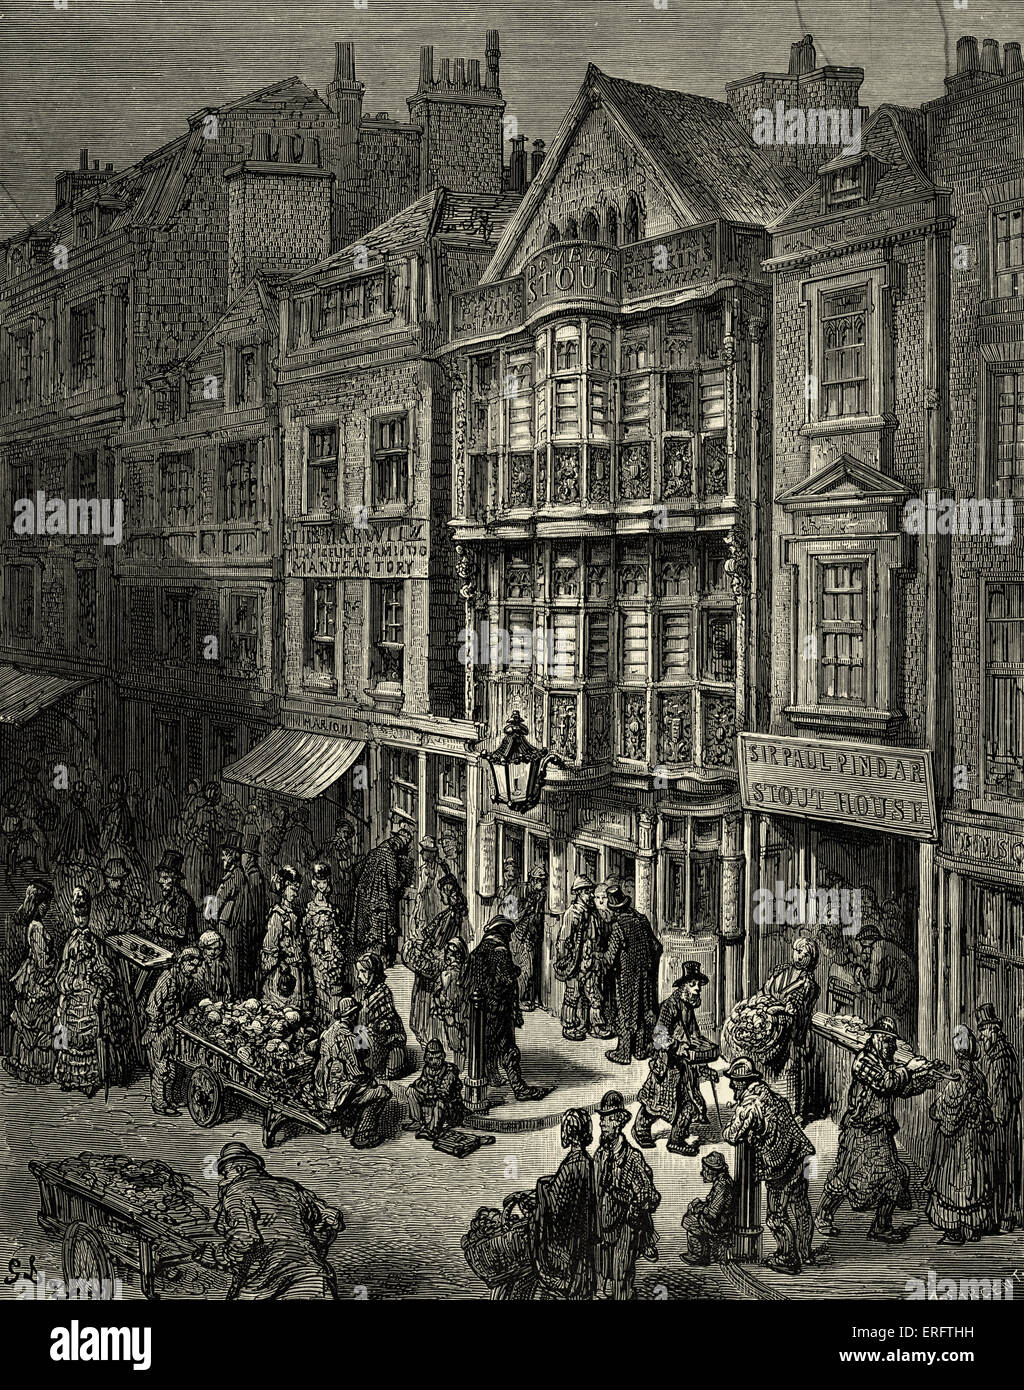 Victorian London - Bishopsgate street. East of London. Jewish quarter. Engraving by Gustave Doré, from 'London, - Stock Image